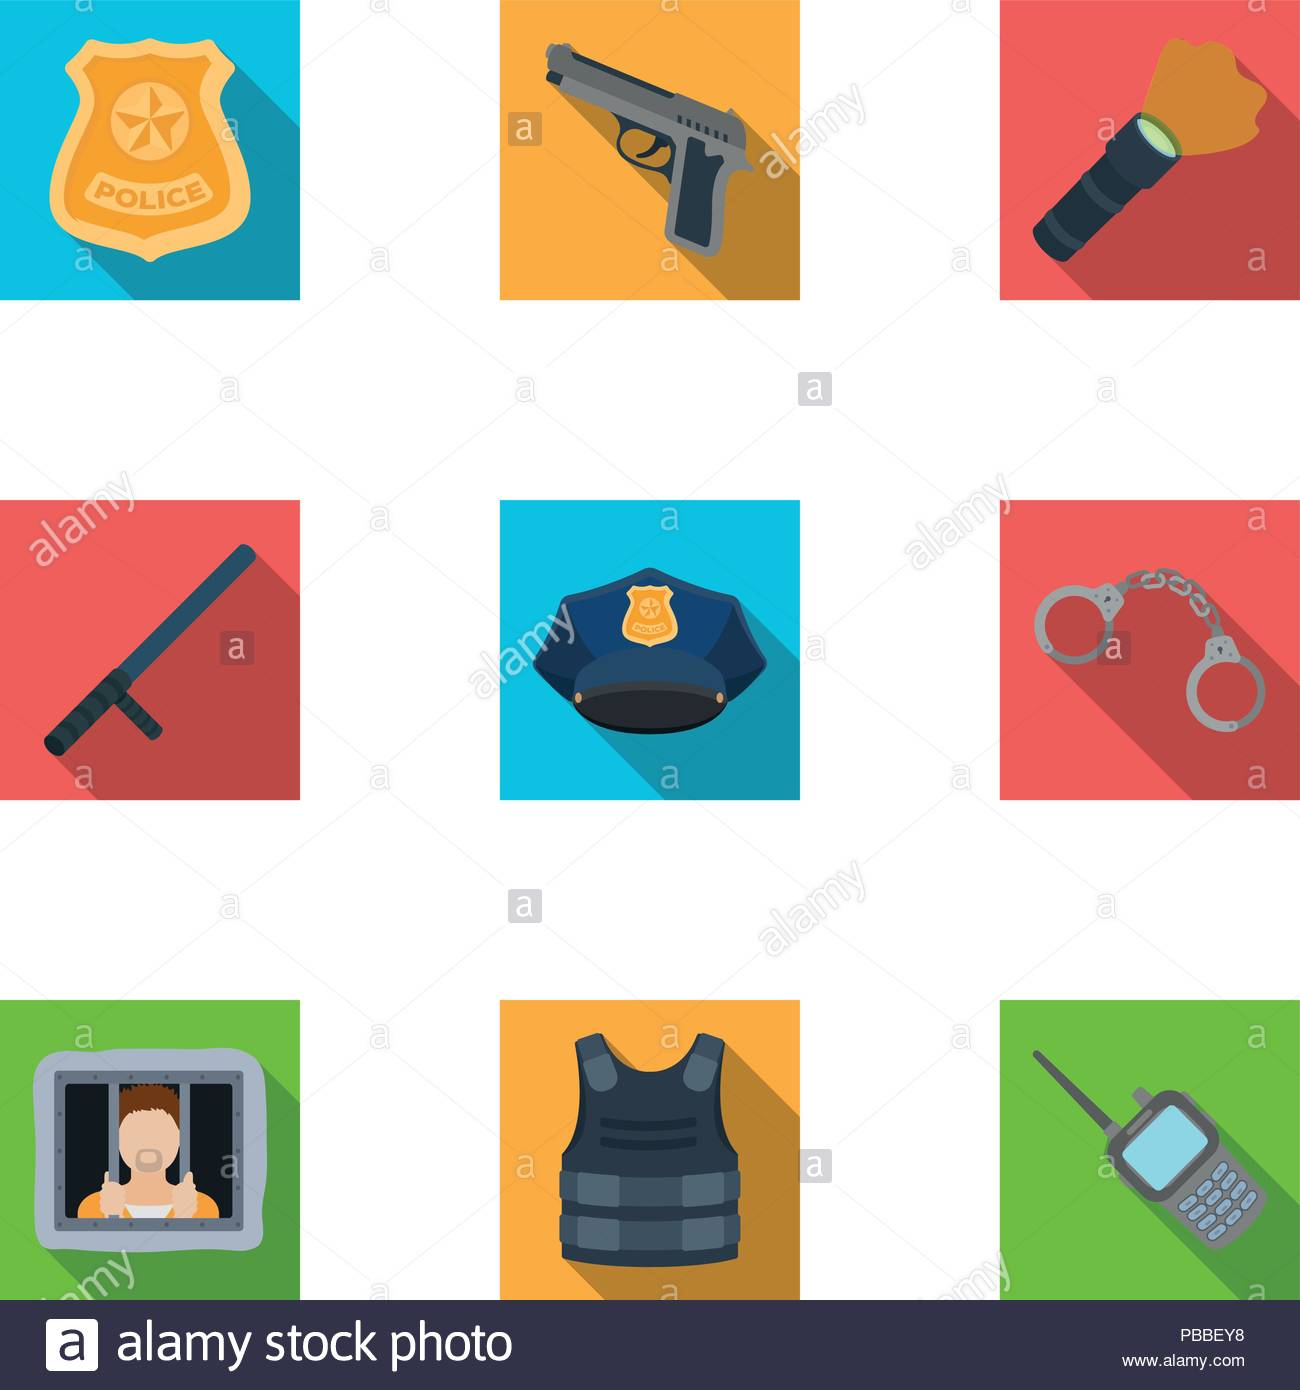 Free Agriculture Cliparts, Download Free Clip Art, Free Clip Art on Clipart  Library